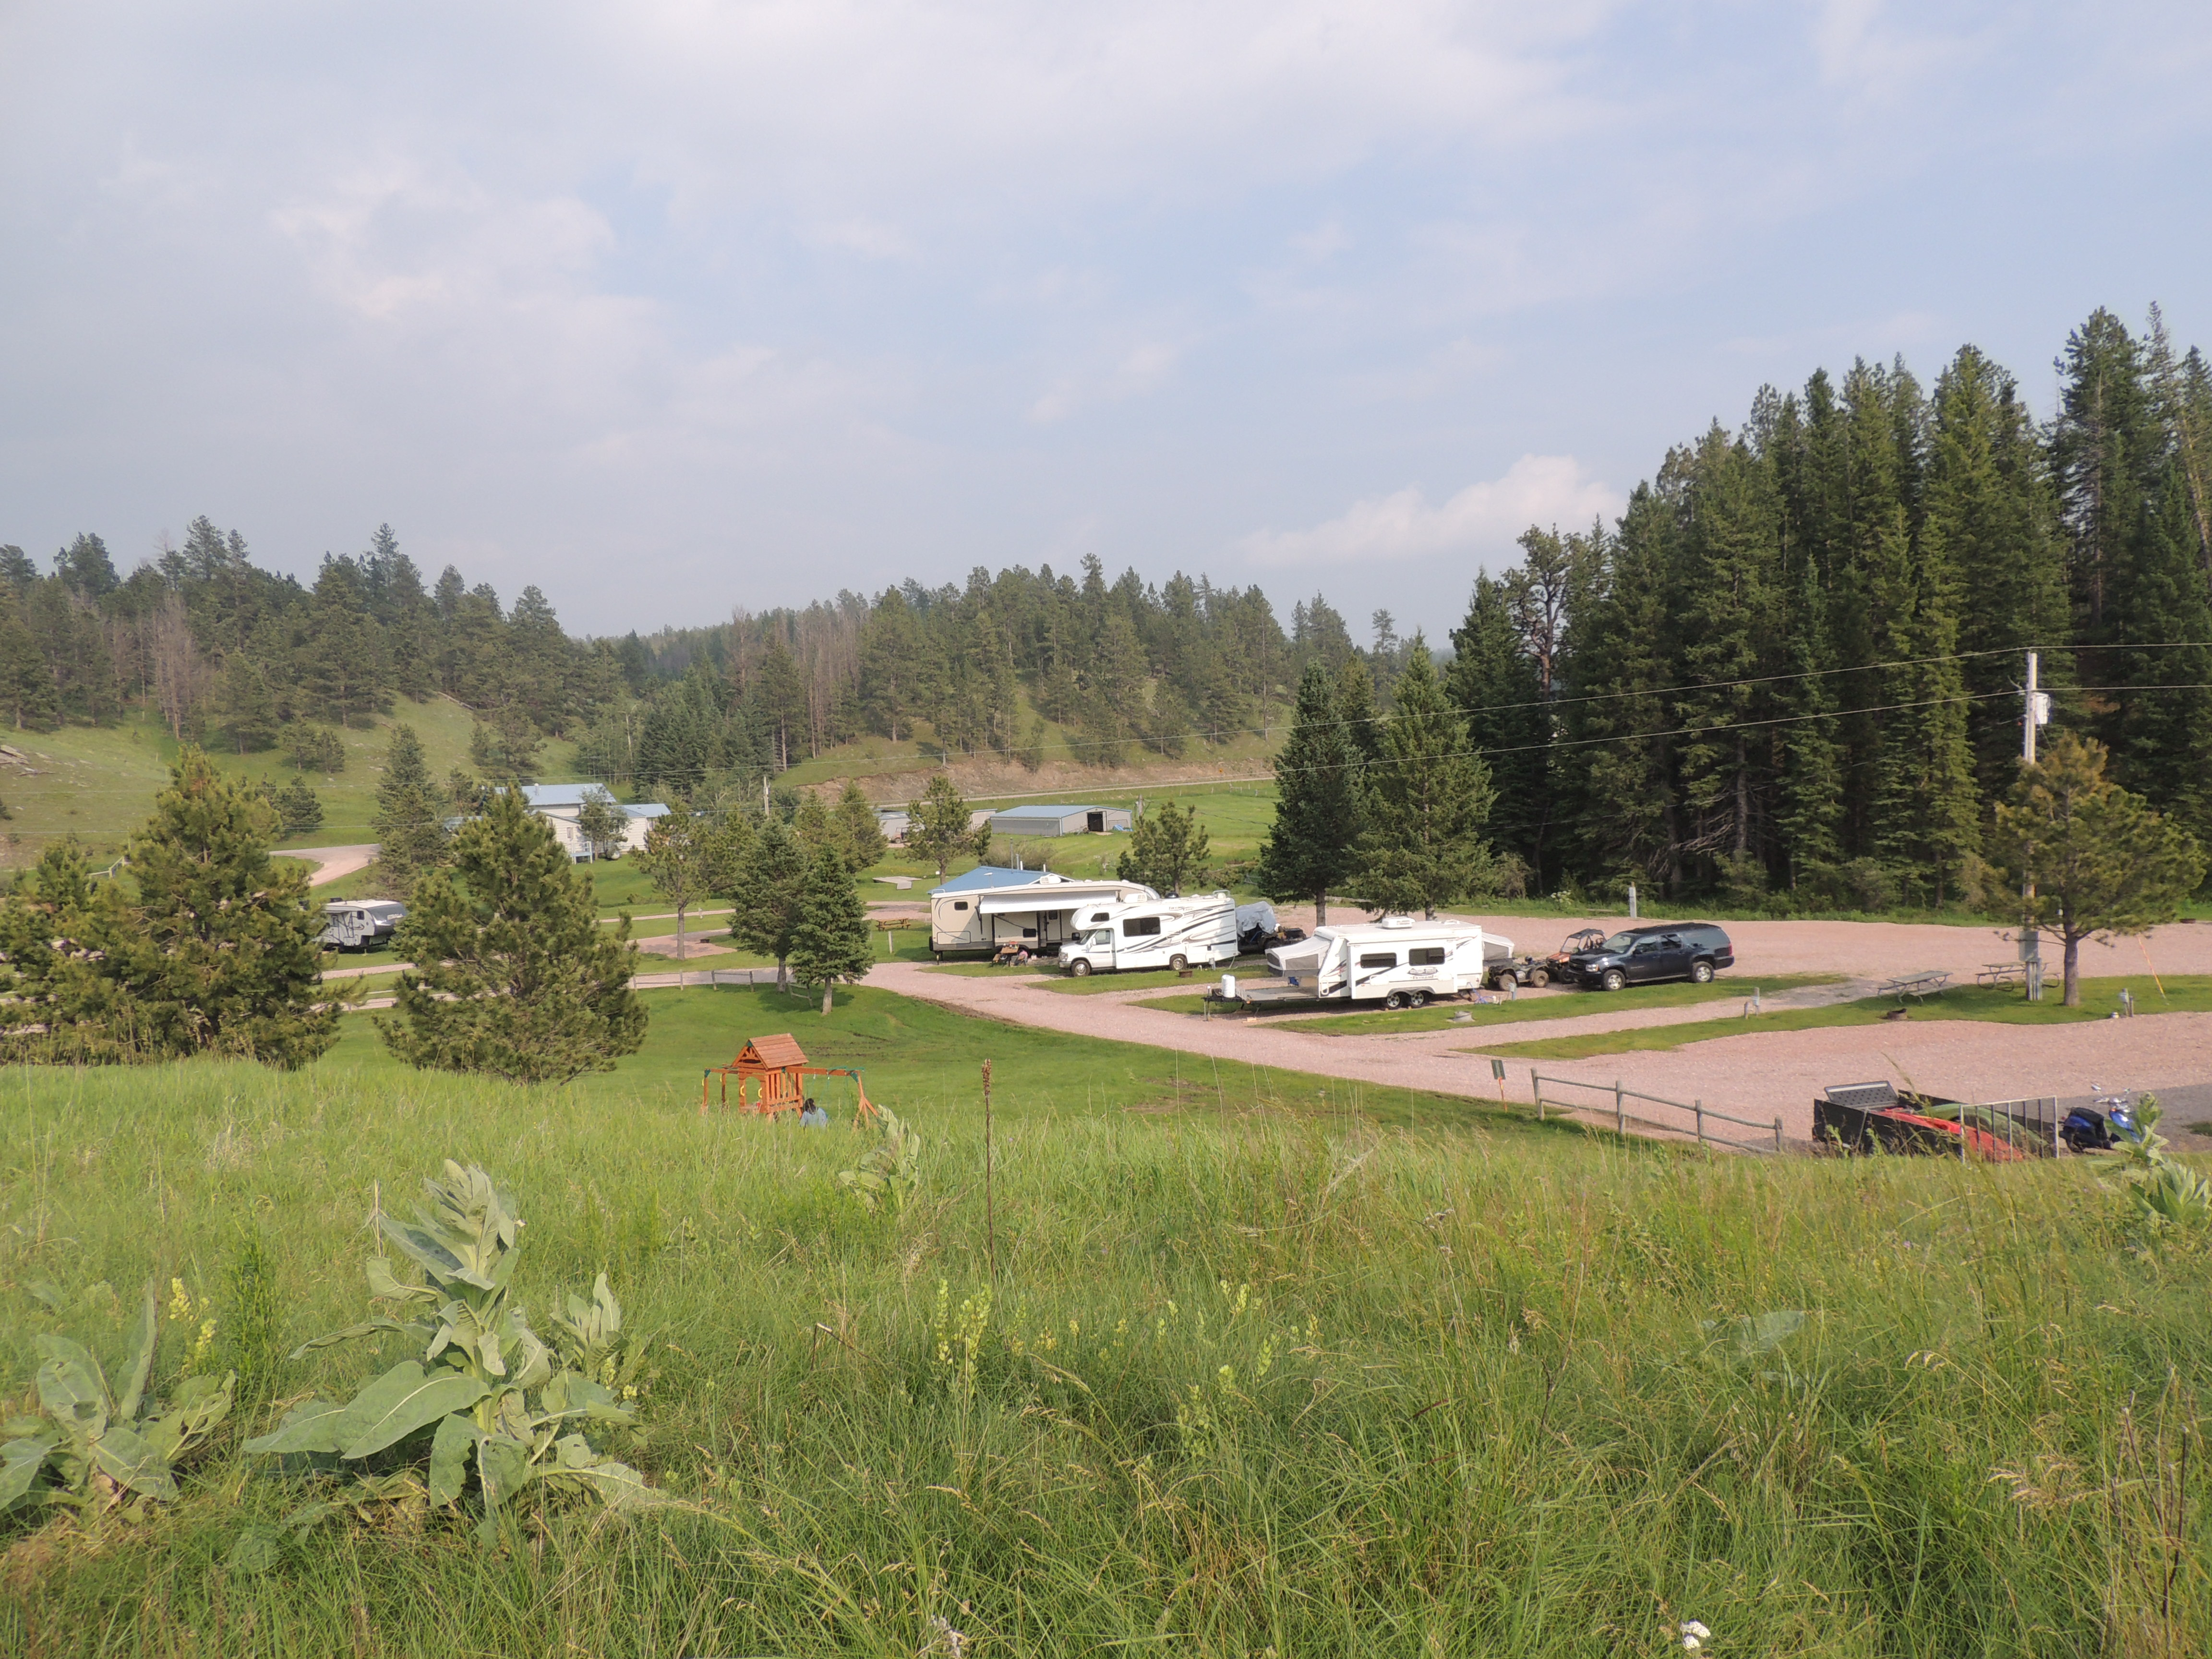 Mt. Meadow Resort & Campground